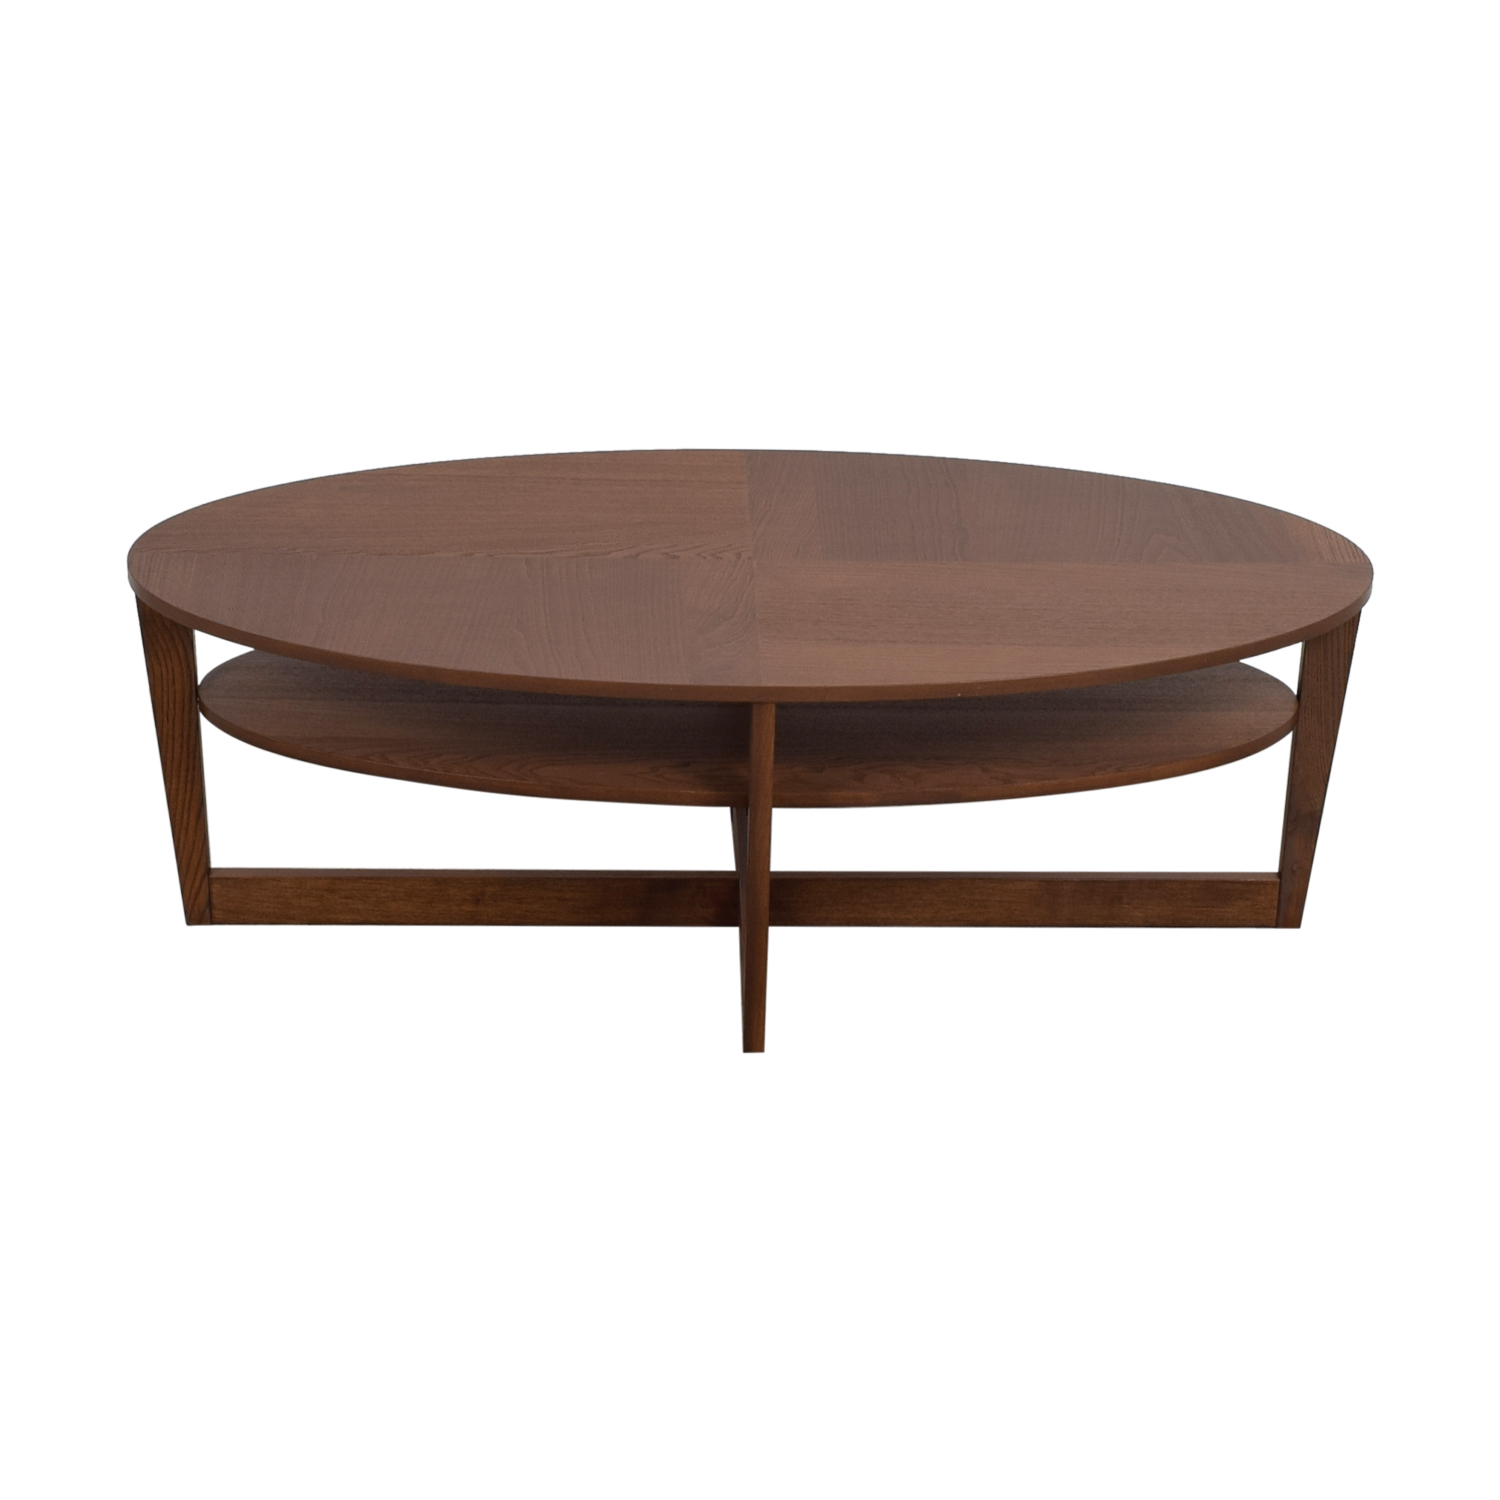 Coffee Table Ikea.35 Off Ikea Ikea Oval Coffee Table Tables